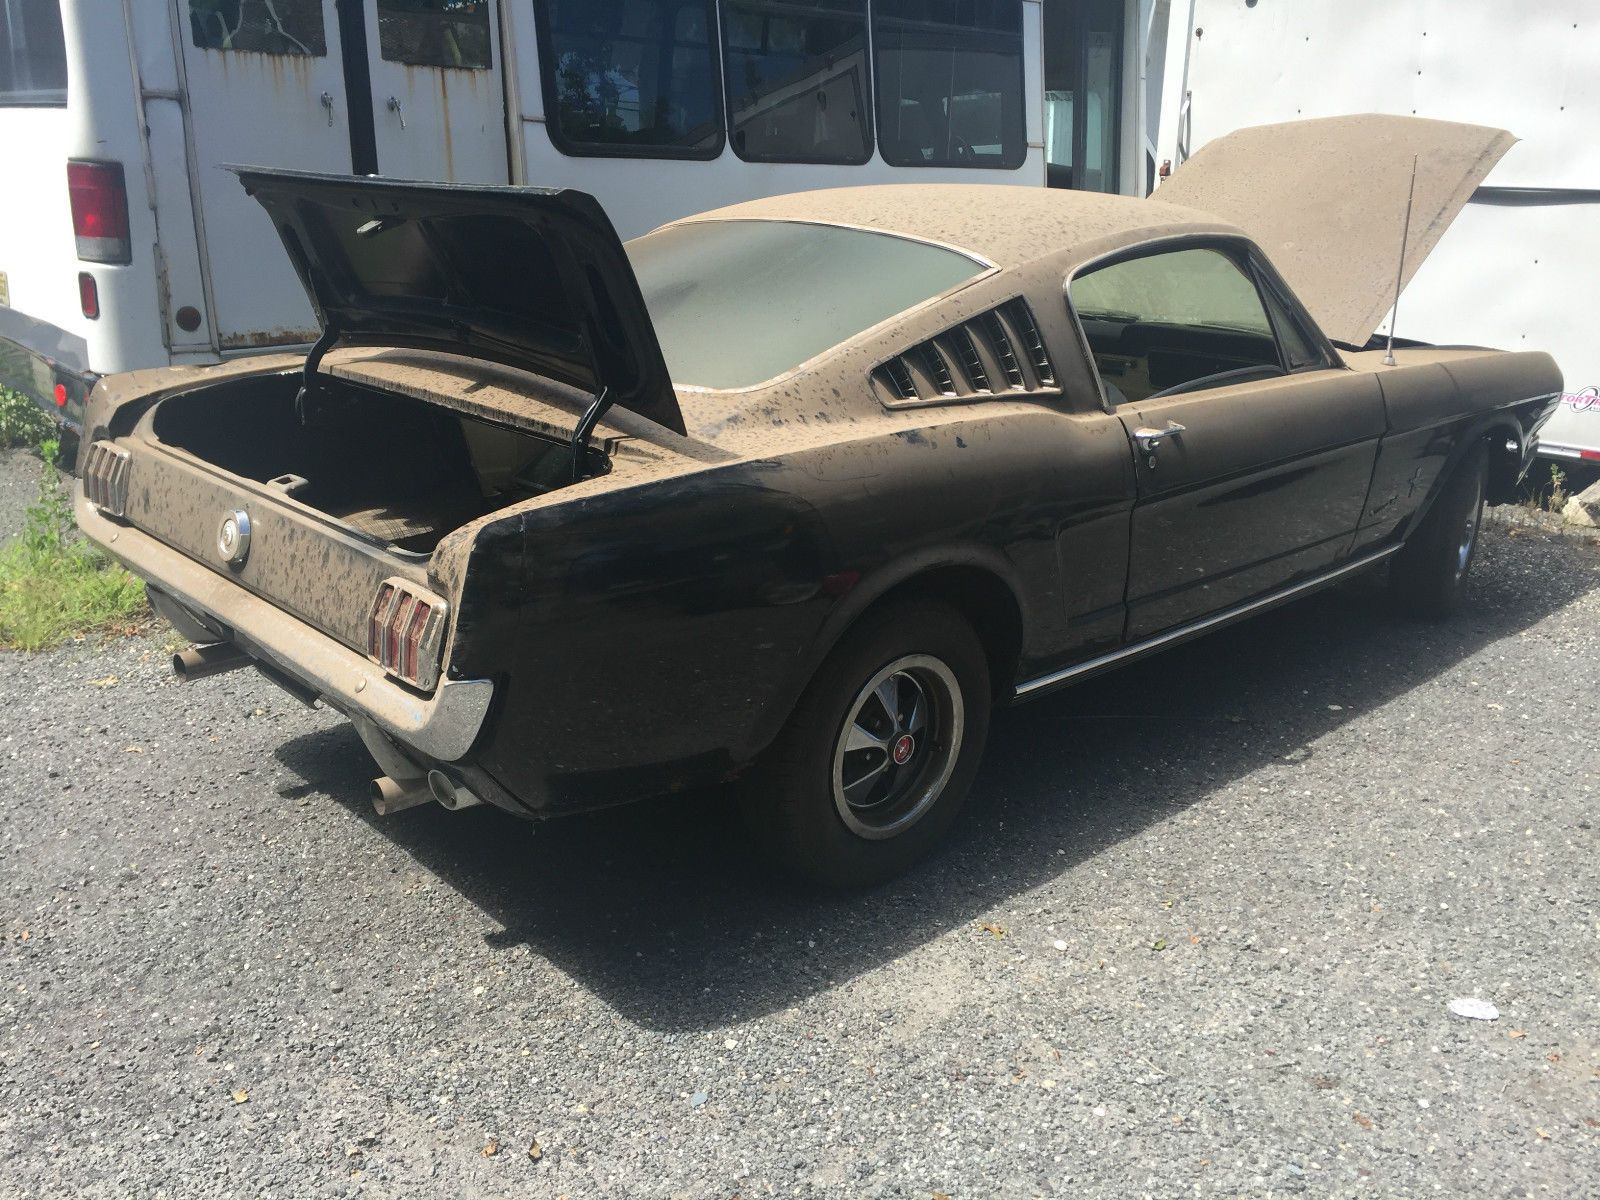 Ford Mustang FORD MUSTANG FASTBACK 2 2 289 4 SPD RUNS BARN FIND